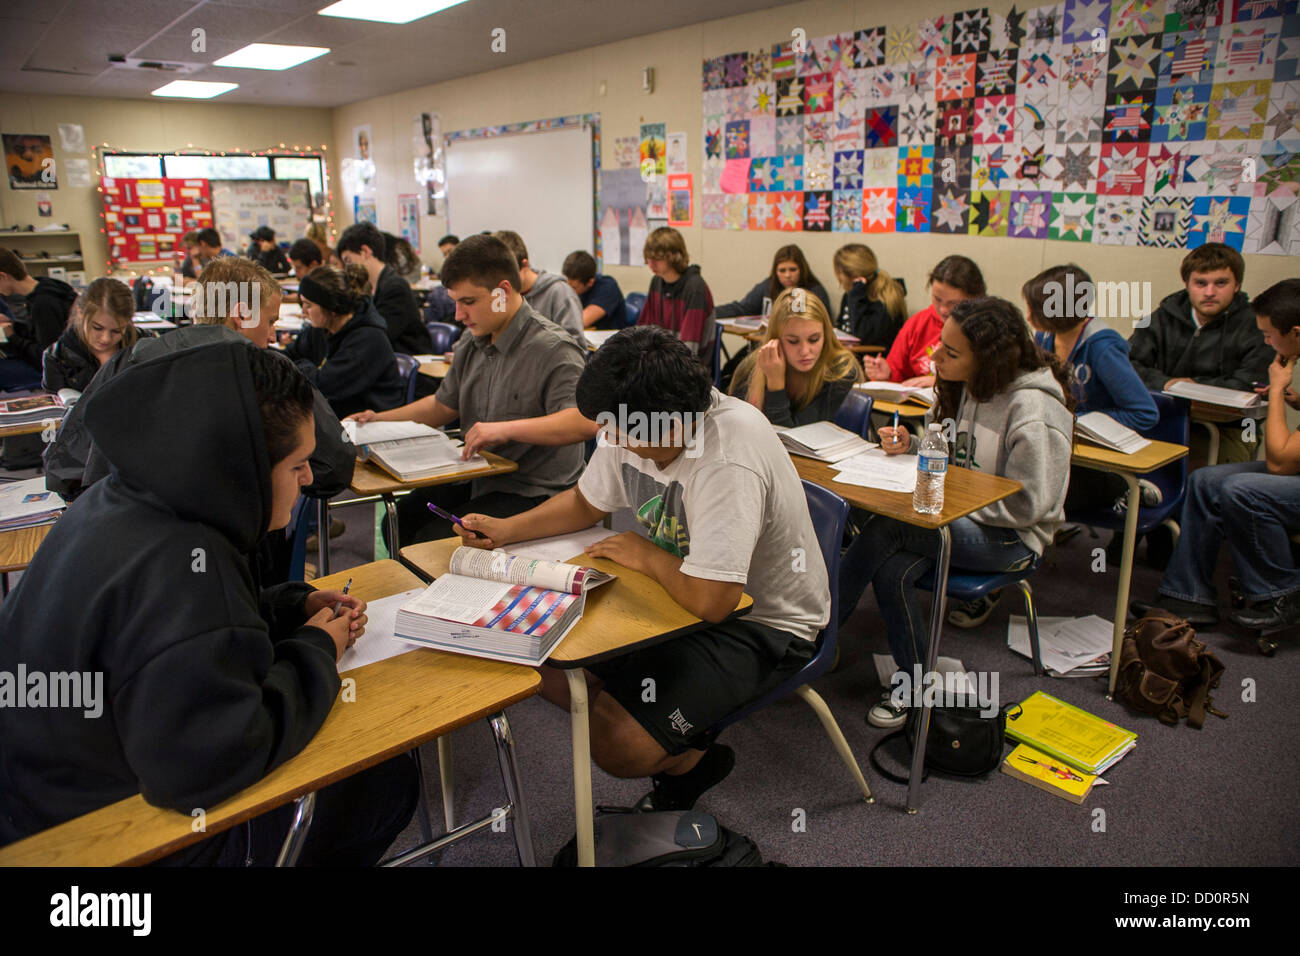 the high school students and working Download three team-building activities for high school students and use them to establish a great classroom dynamic.